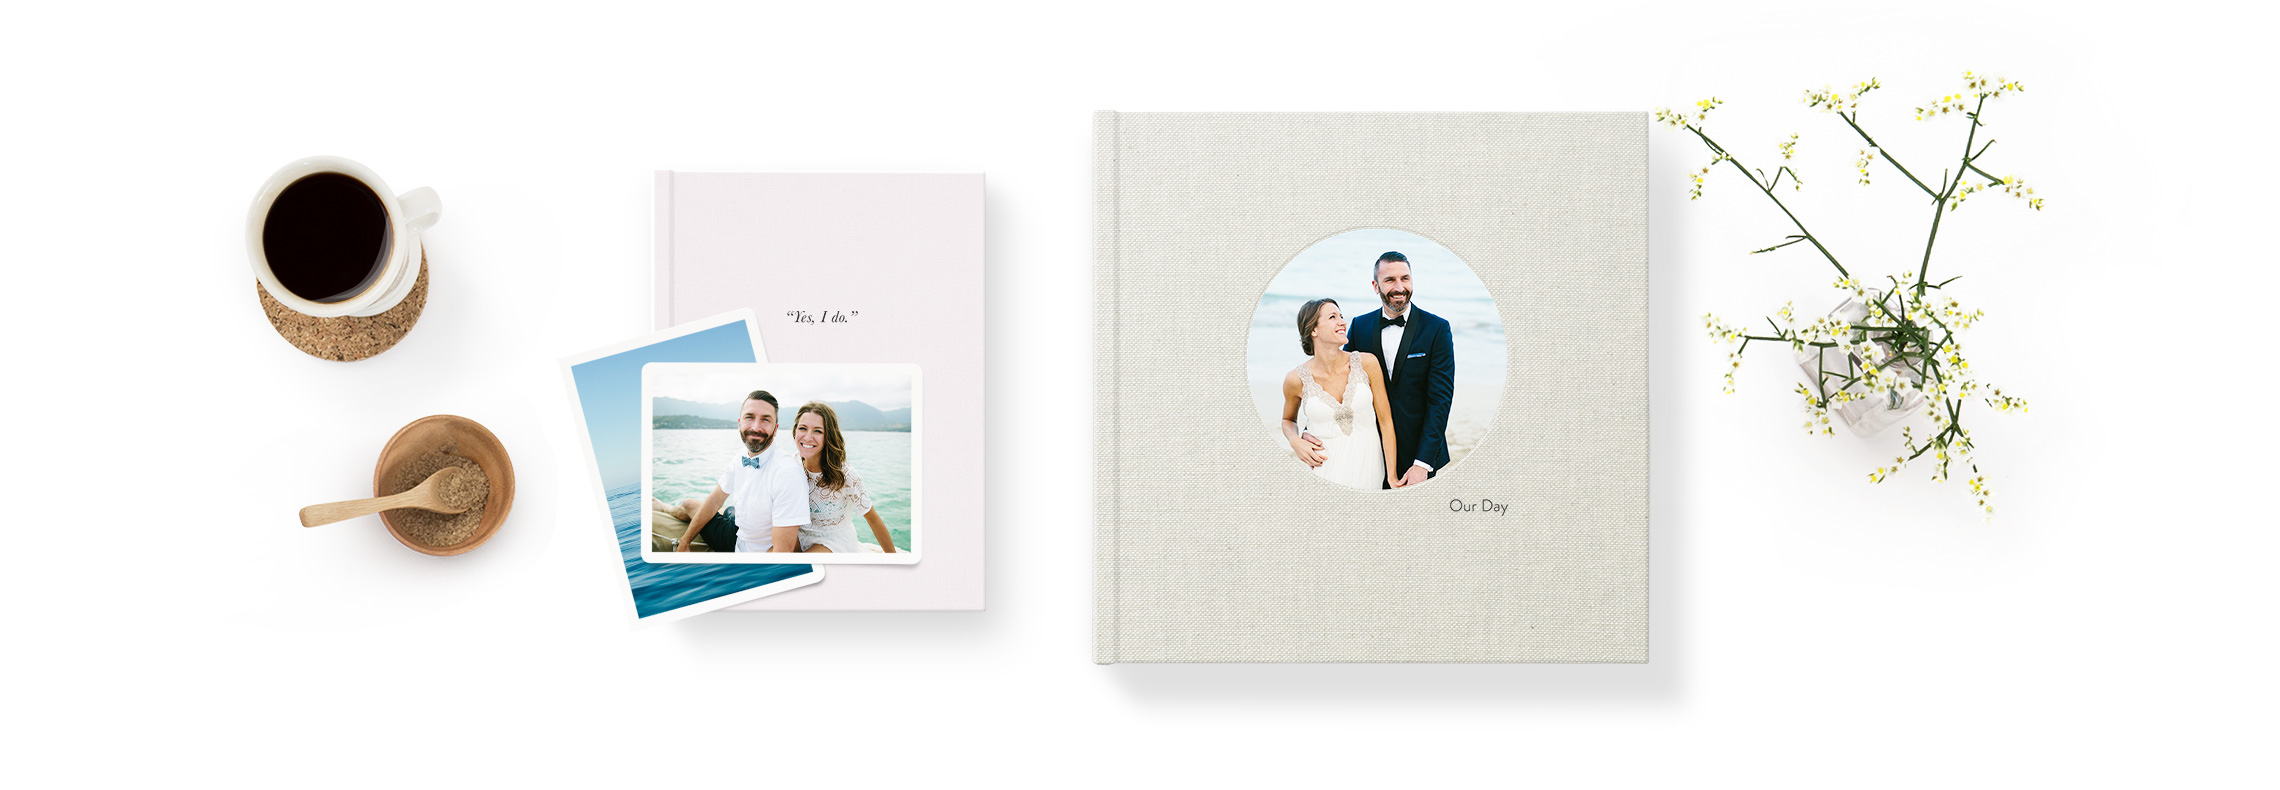 Photo book, photo album and art prints set on a white table with coffee cup and vase of flowers.